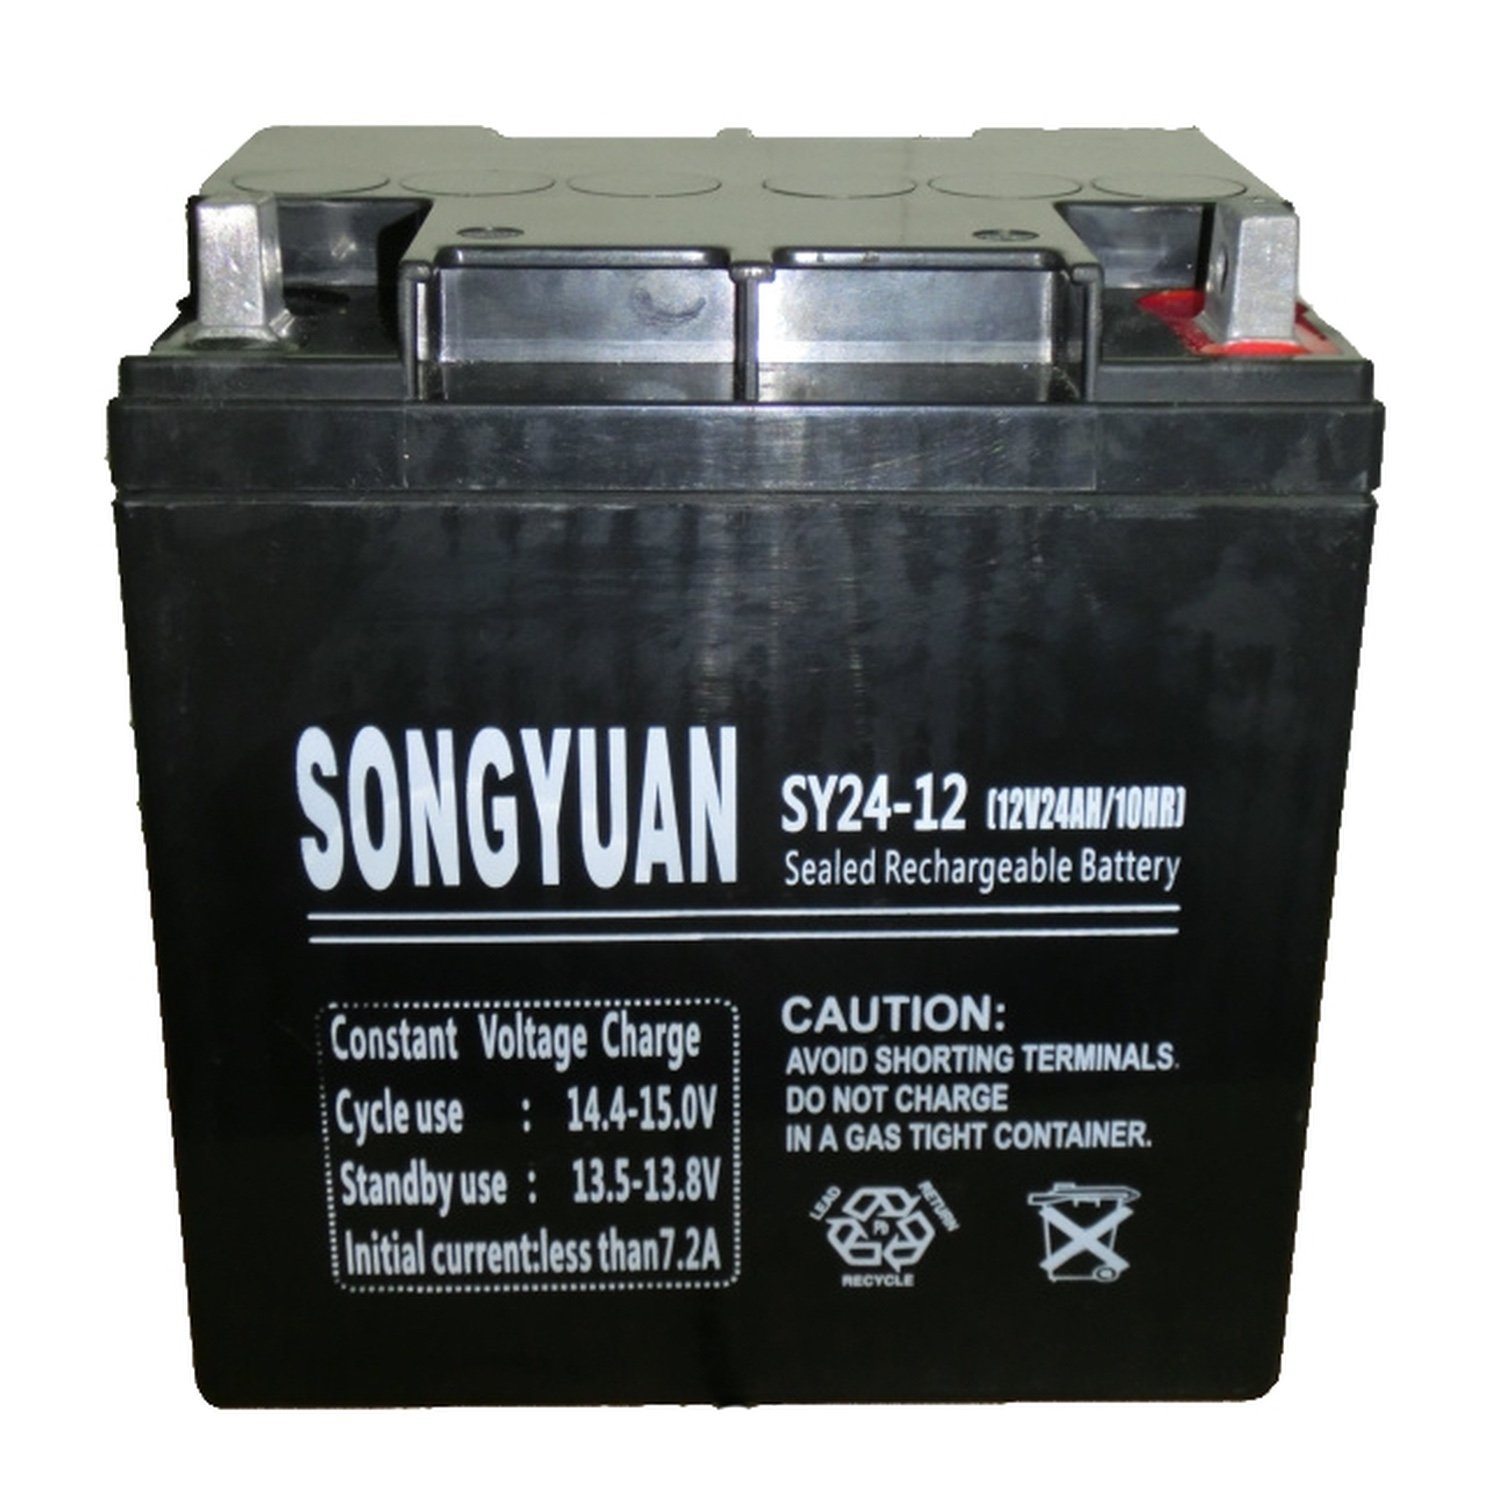 Lead Battery 12 V/24Ah SY24-12 165mm x 125mm x 175mm наклейка blue horse 30 x 10 a4 144